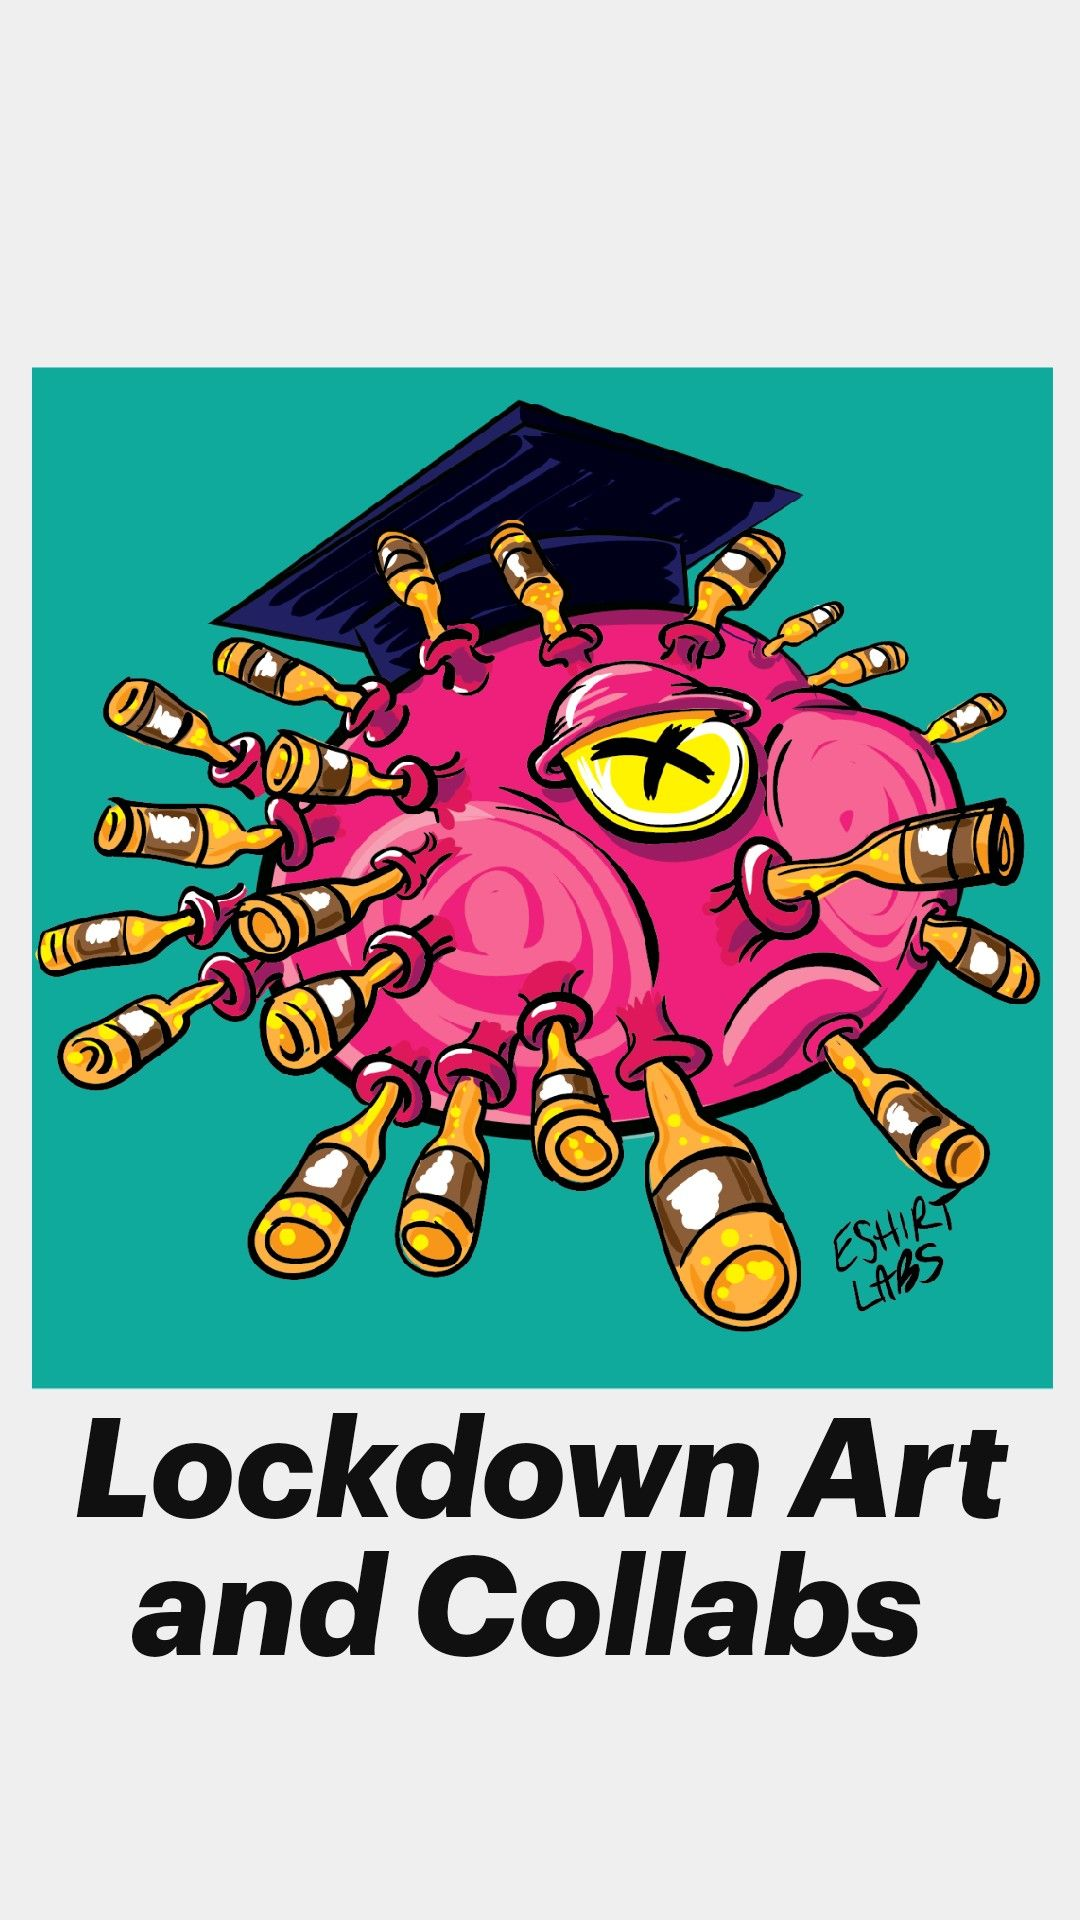 Lockdown Art and Collabs